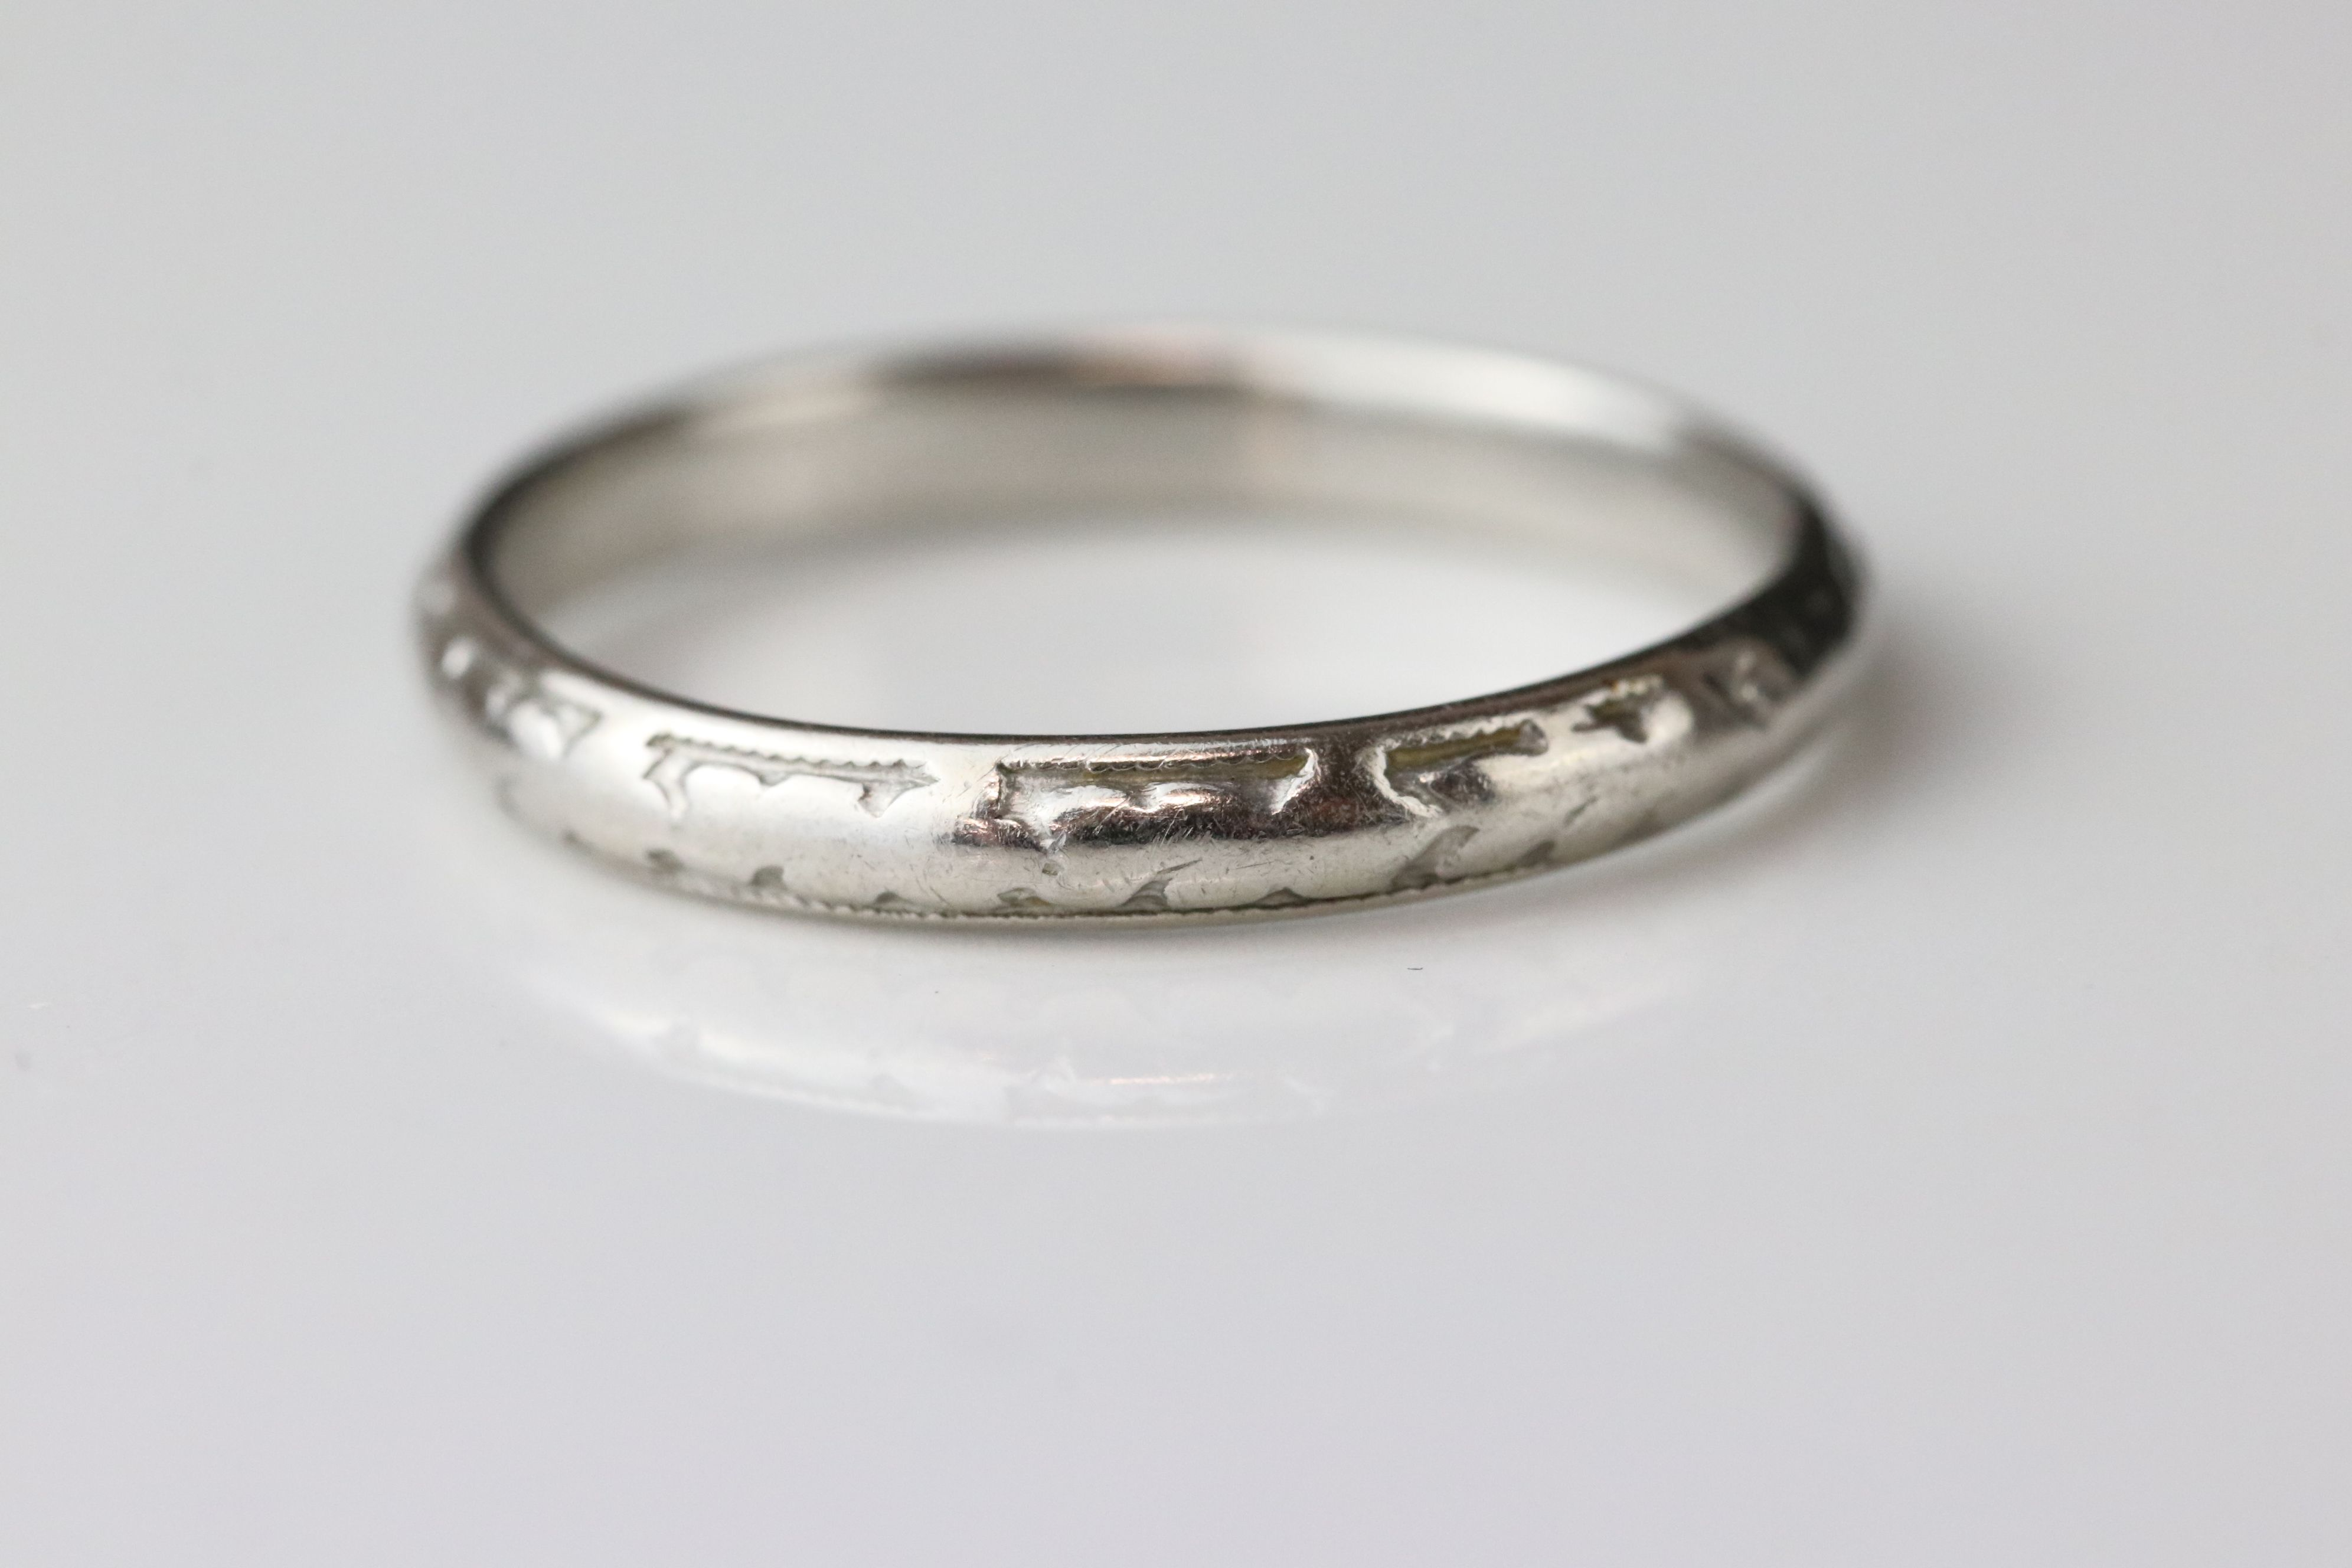 Platinum wedding band, worn foliate design, width approx 2.5mm, ring size M - Image 2 of 4